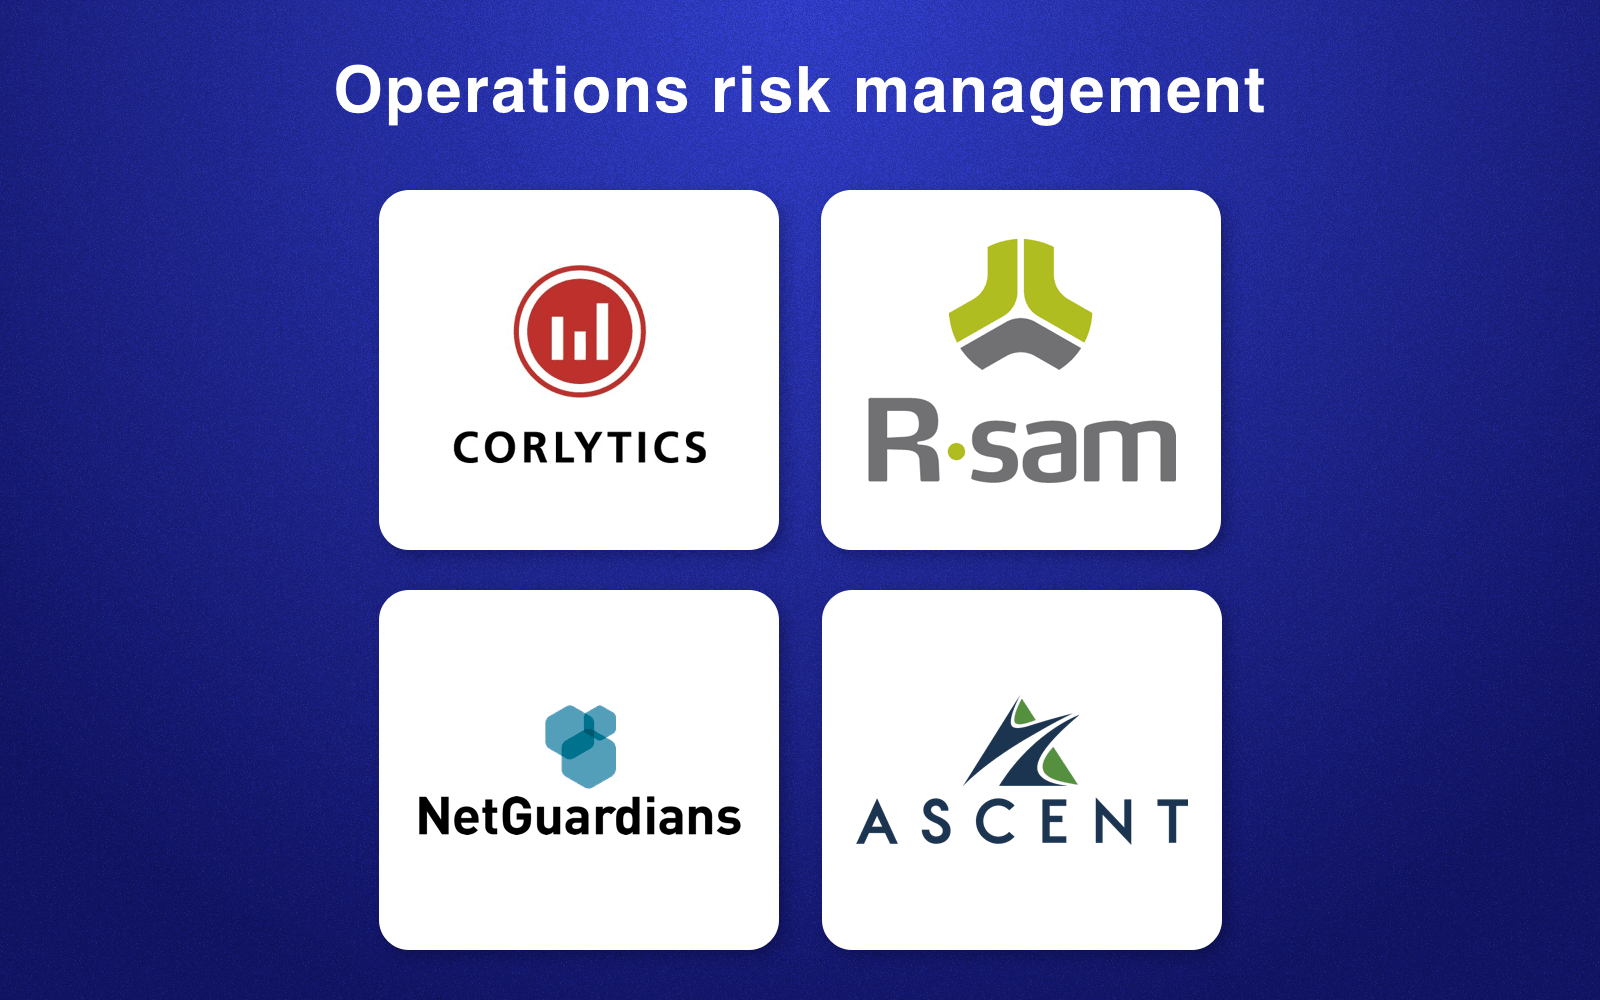 RegTech companies in operations risk management field